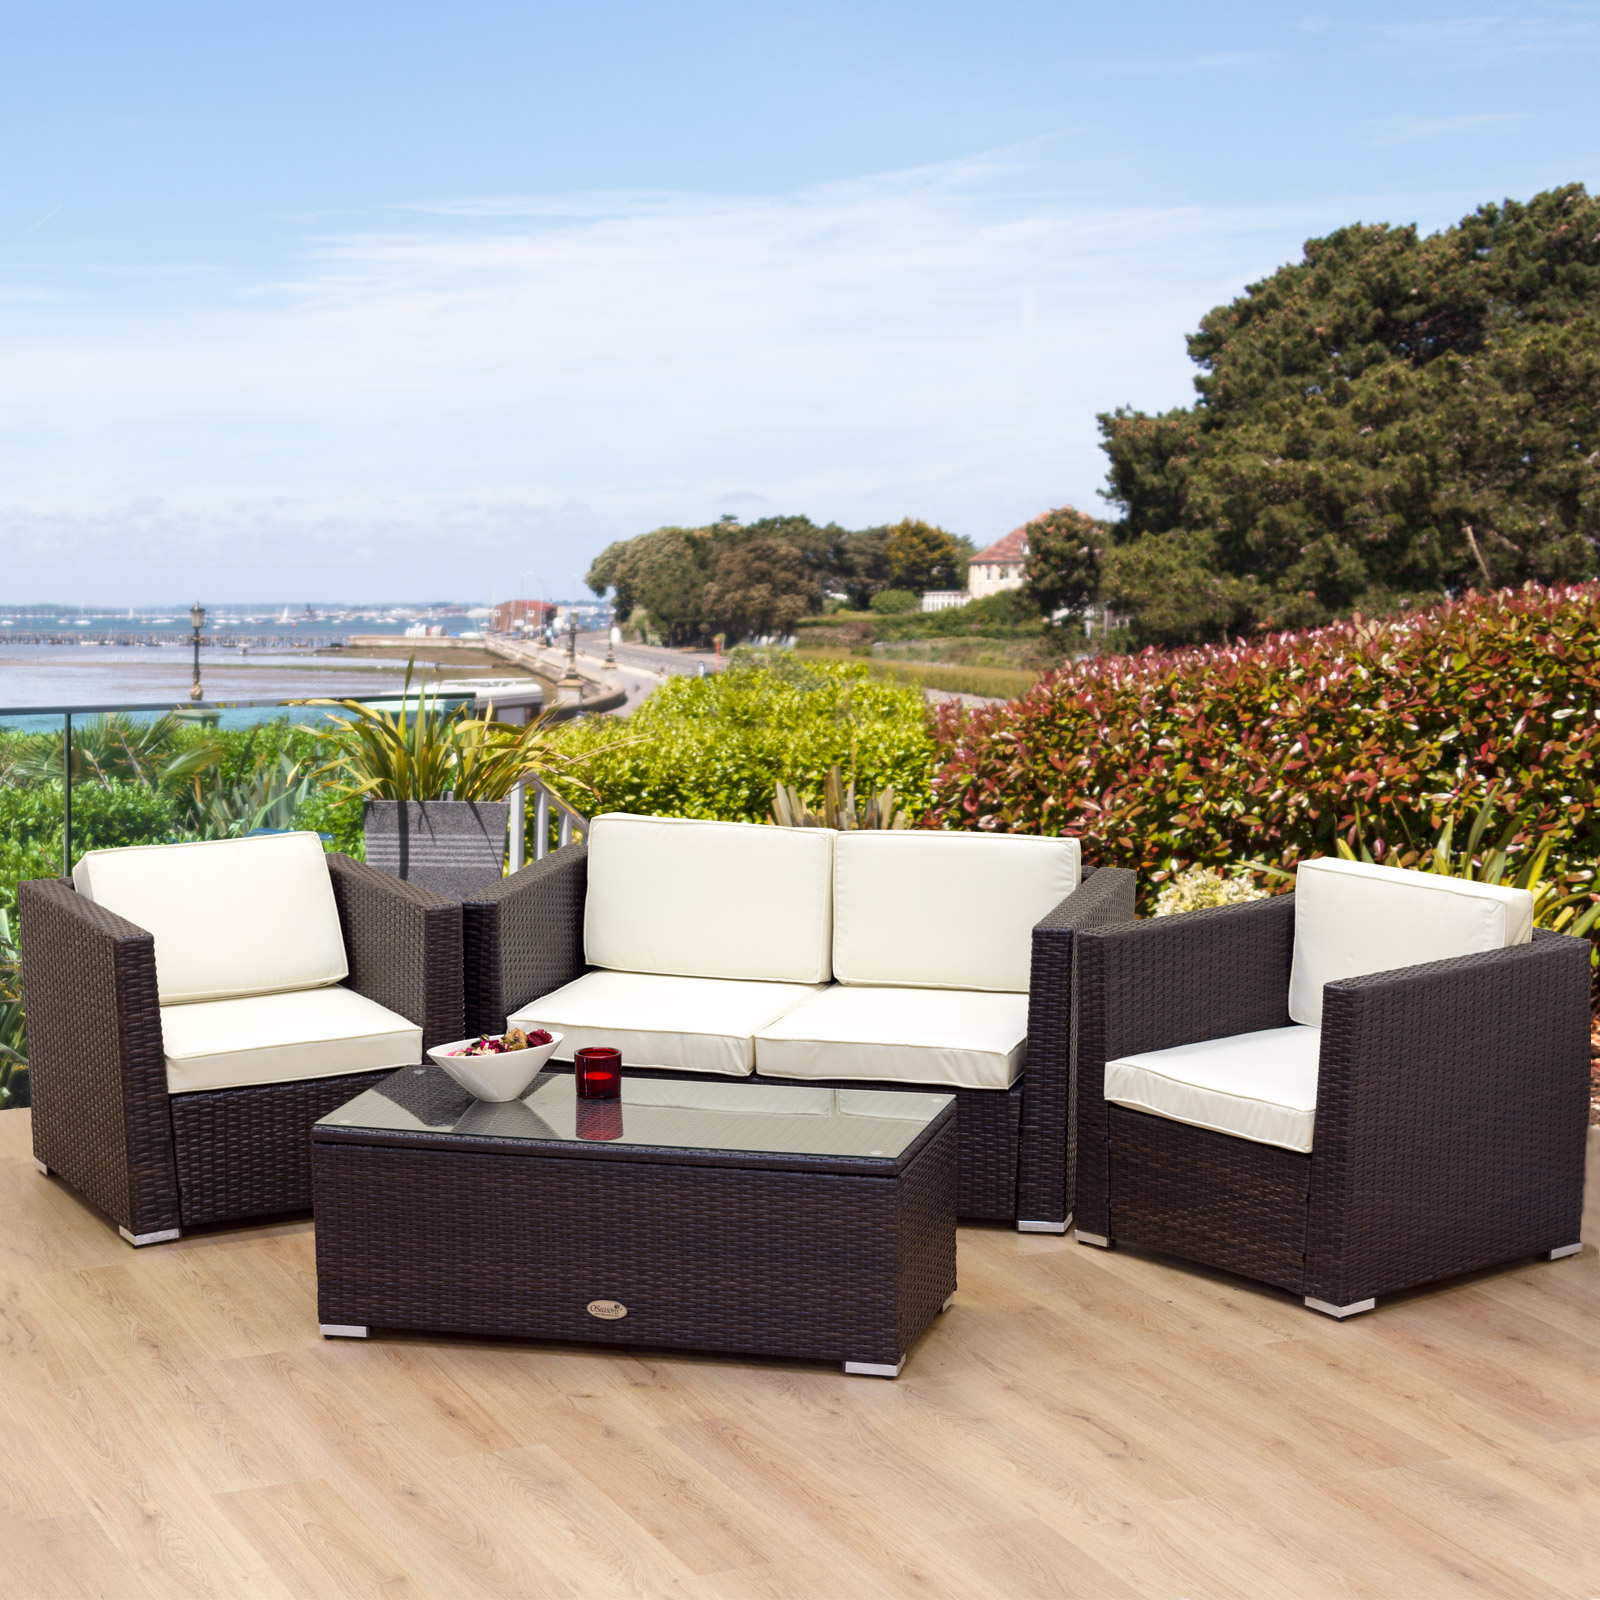 Awesome rattan garden furniture hgnv com for Bamboo outdoor furniture